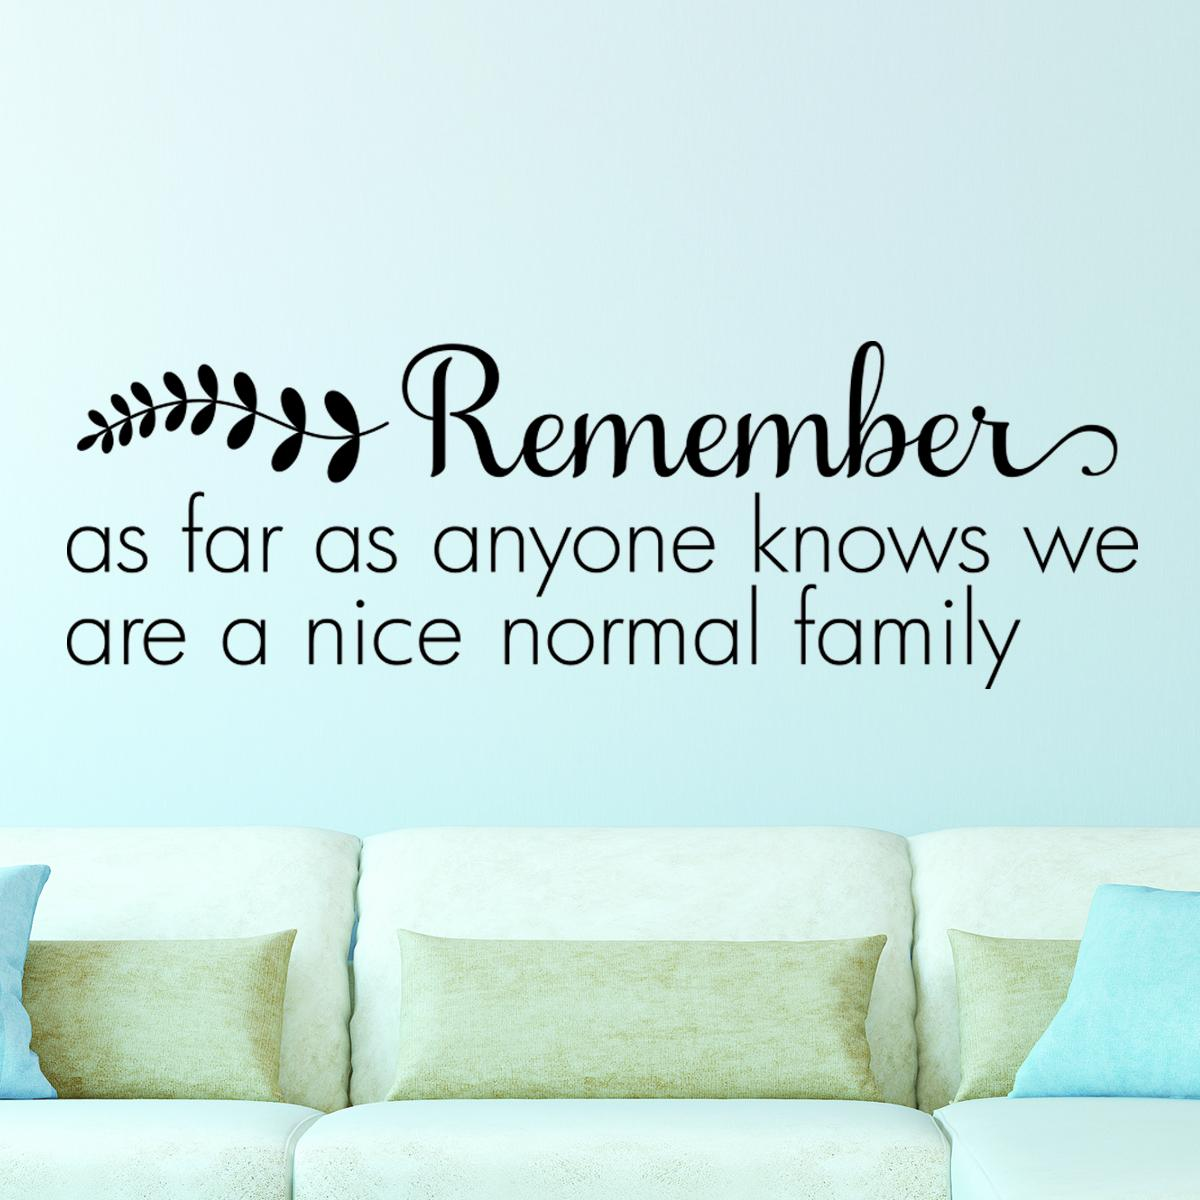 Nice normal family wall quotestm decal wallquotescom for Nice white wall decal quotes